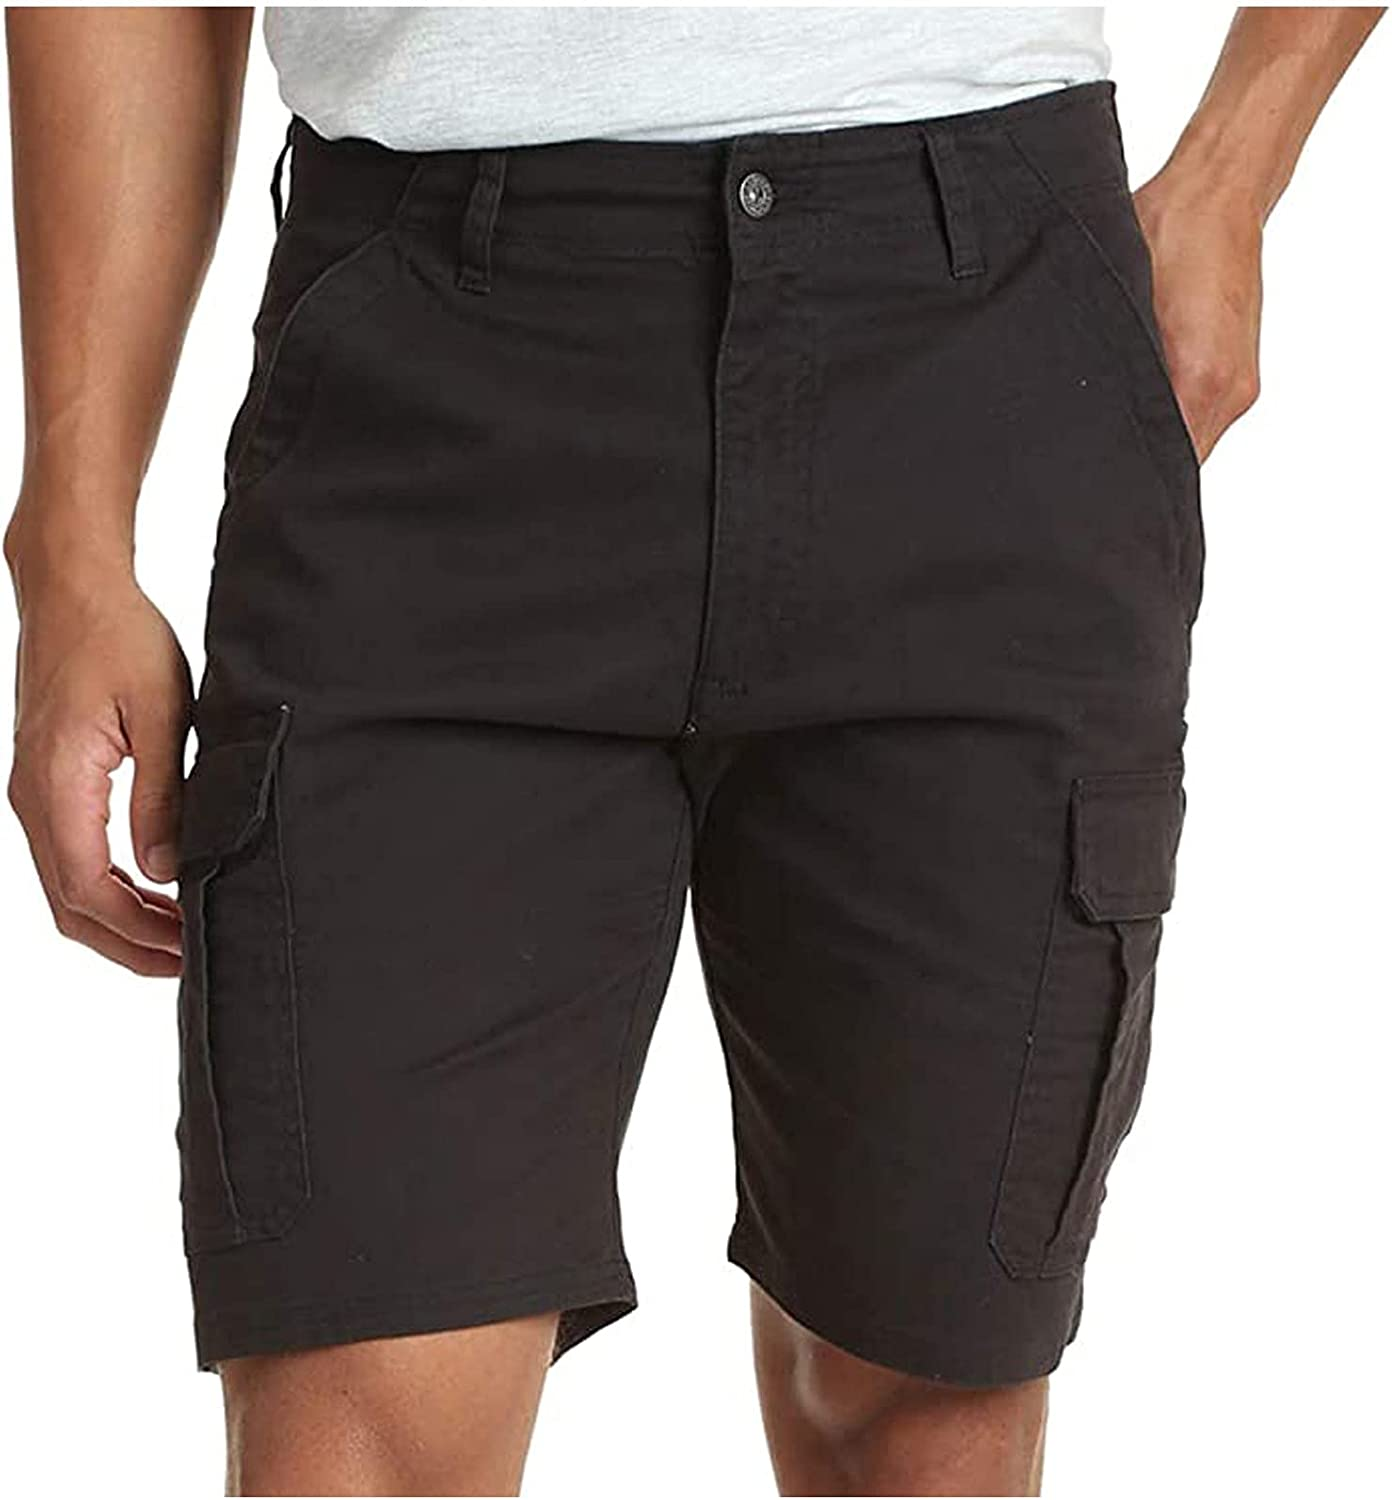 Men's Cargo Shorts Button Casual Lightweight Stretchy Work Pants with Multi Pockets Classic Relaxed Fit